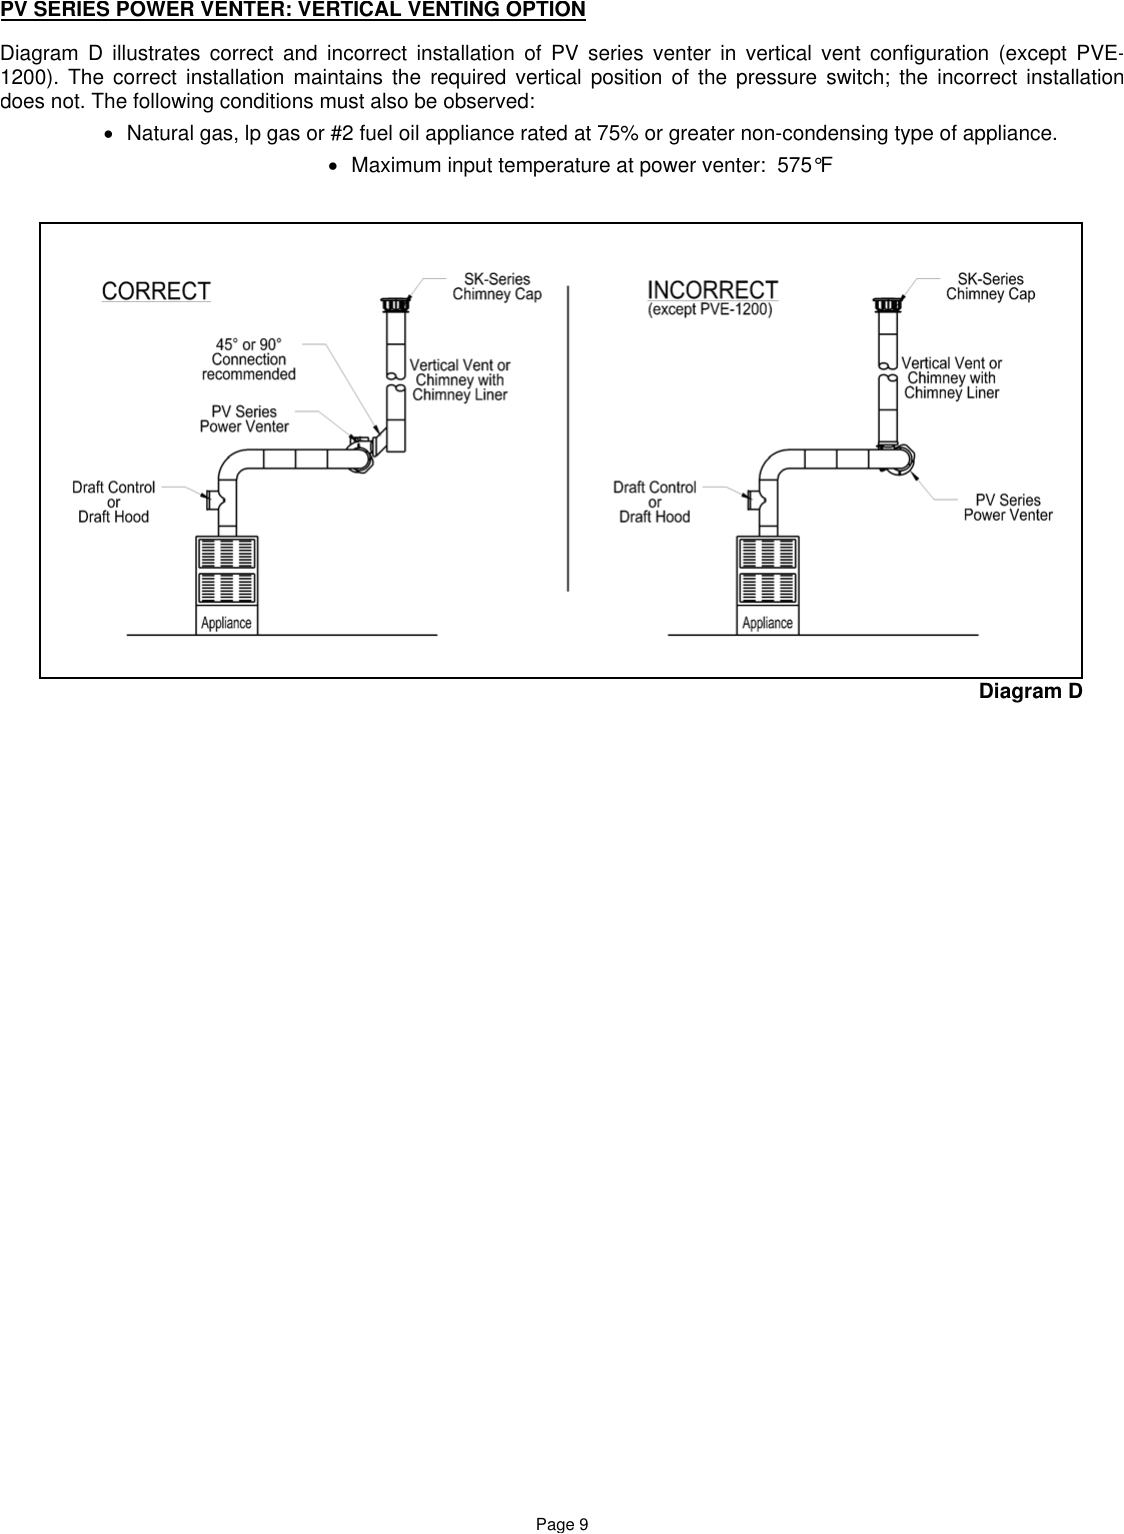 fieldcontrolspvo600usersmanual427562 614804742 user guide page 9 png